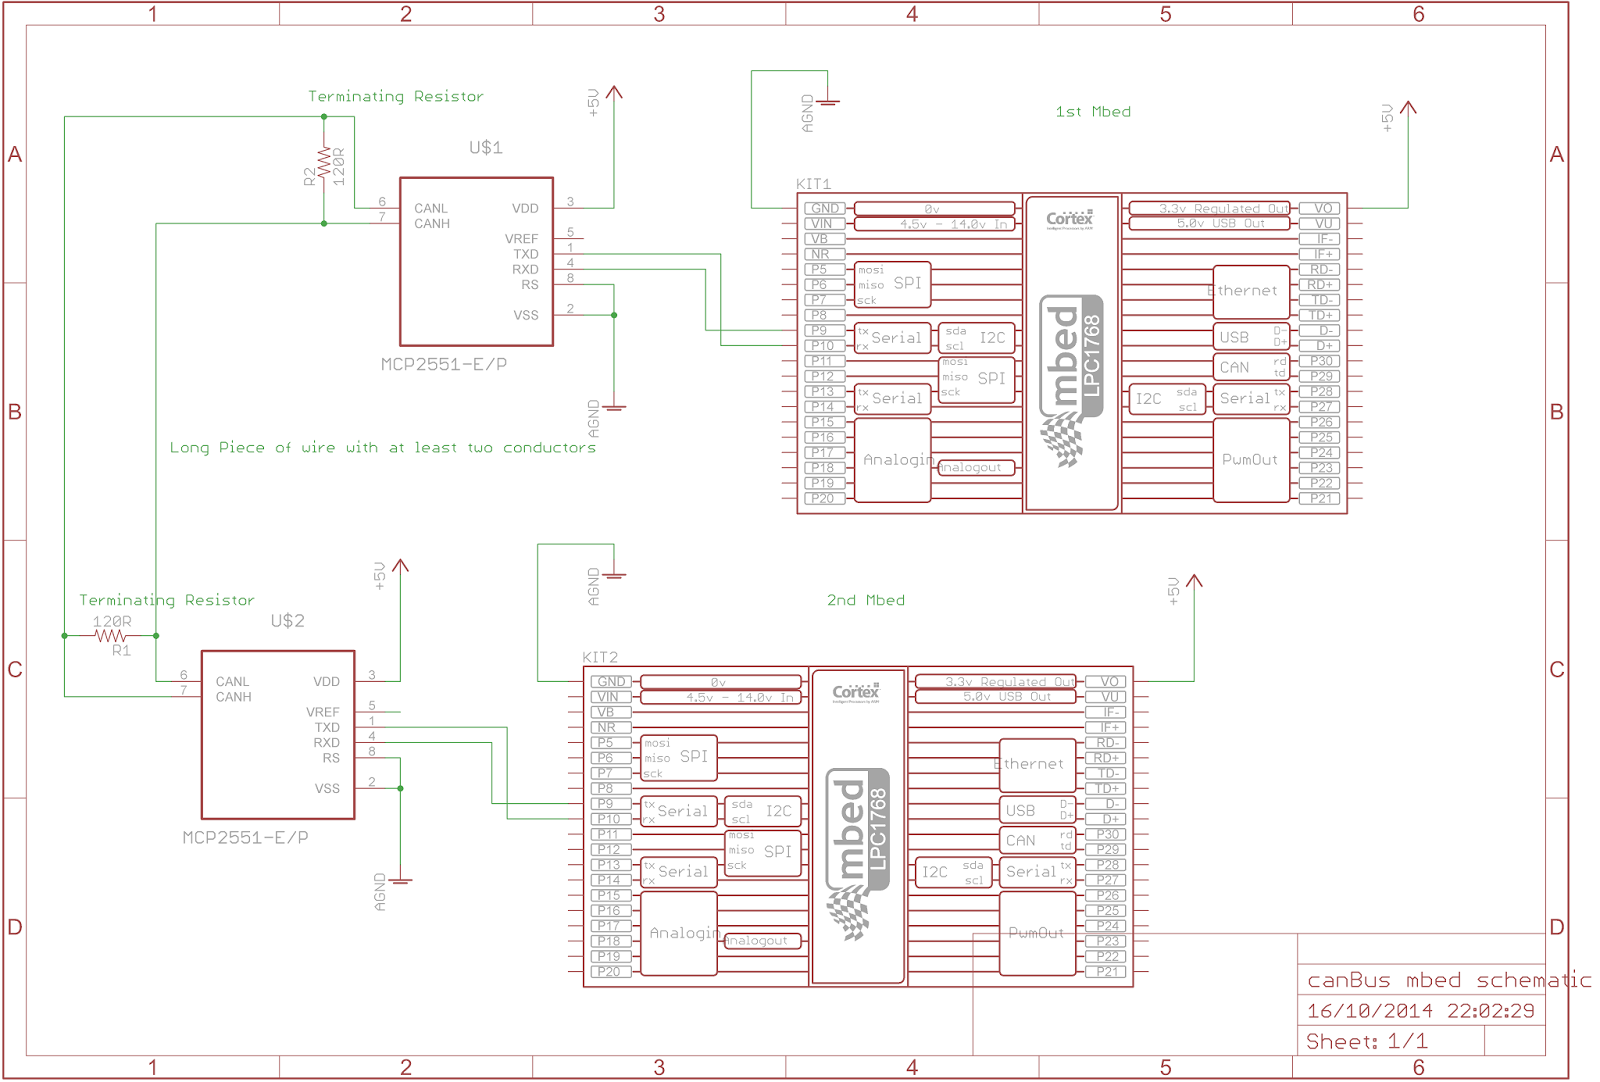 can bus wiring diagram 3 way switch system schematic free engine image for user